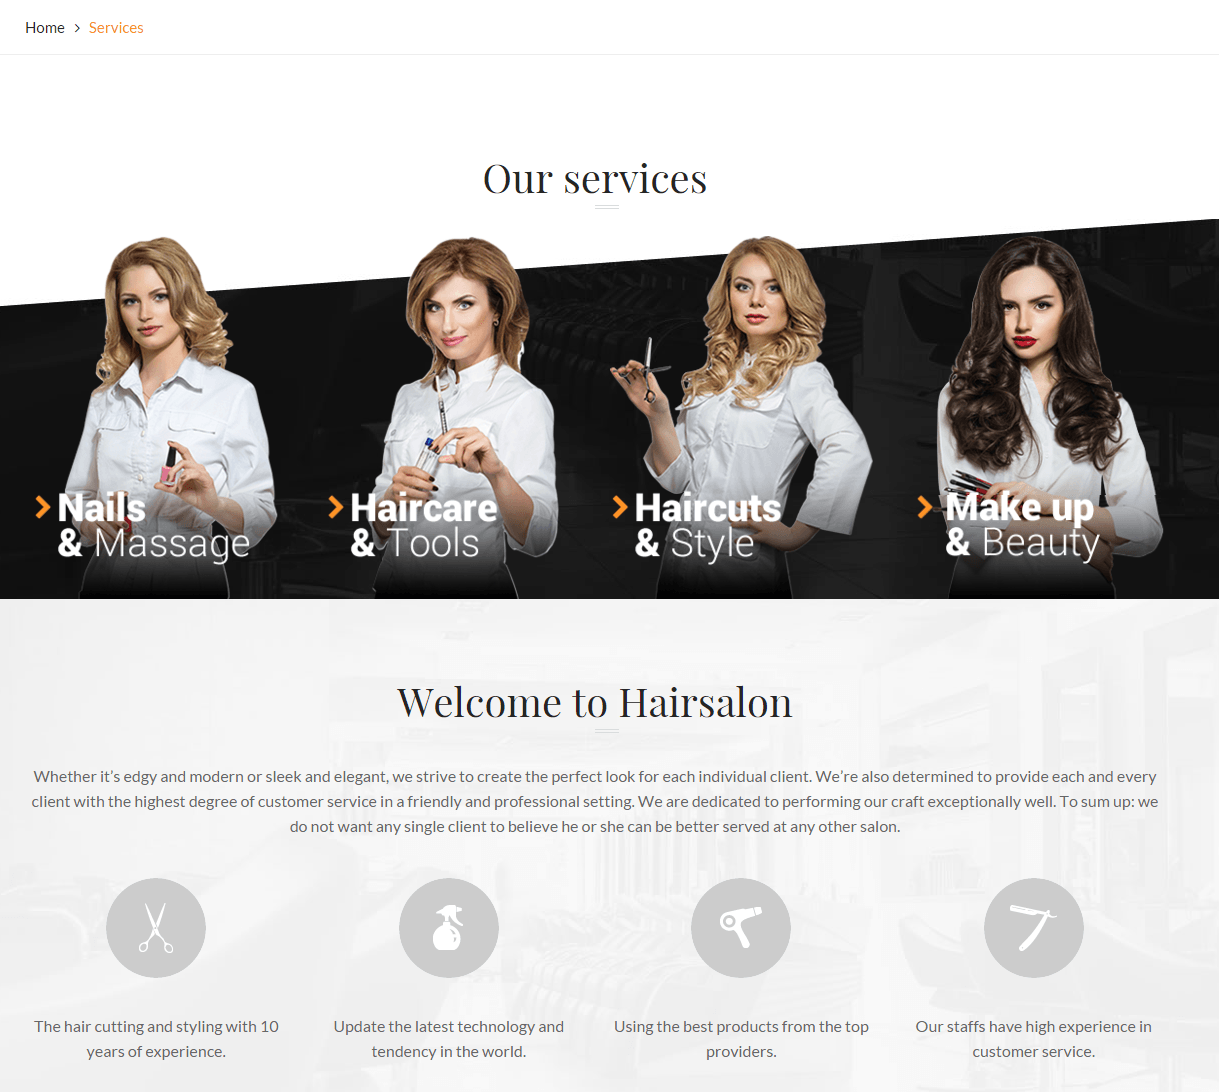 Hair Salon- Services page built with page builder